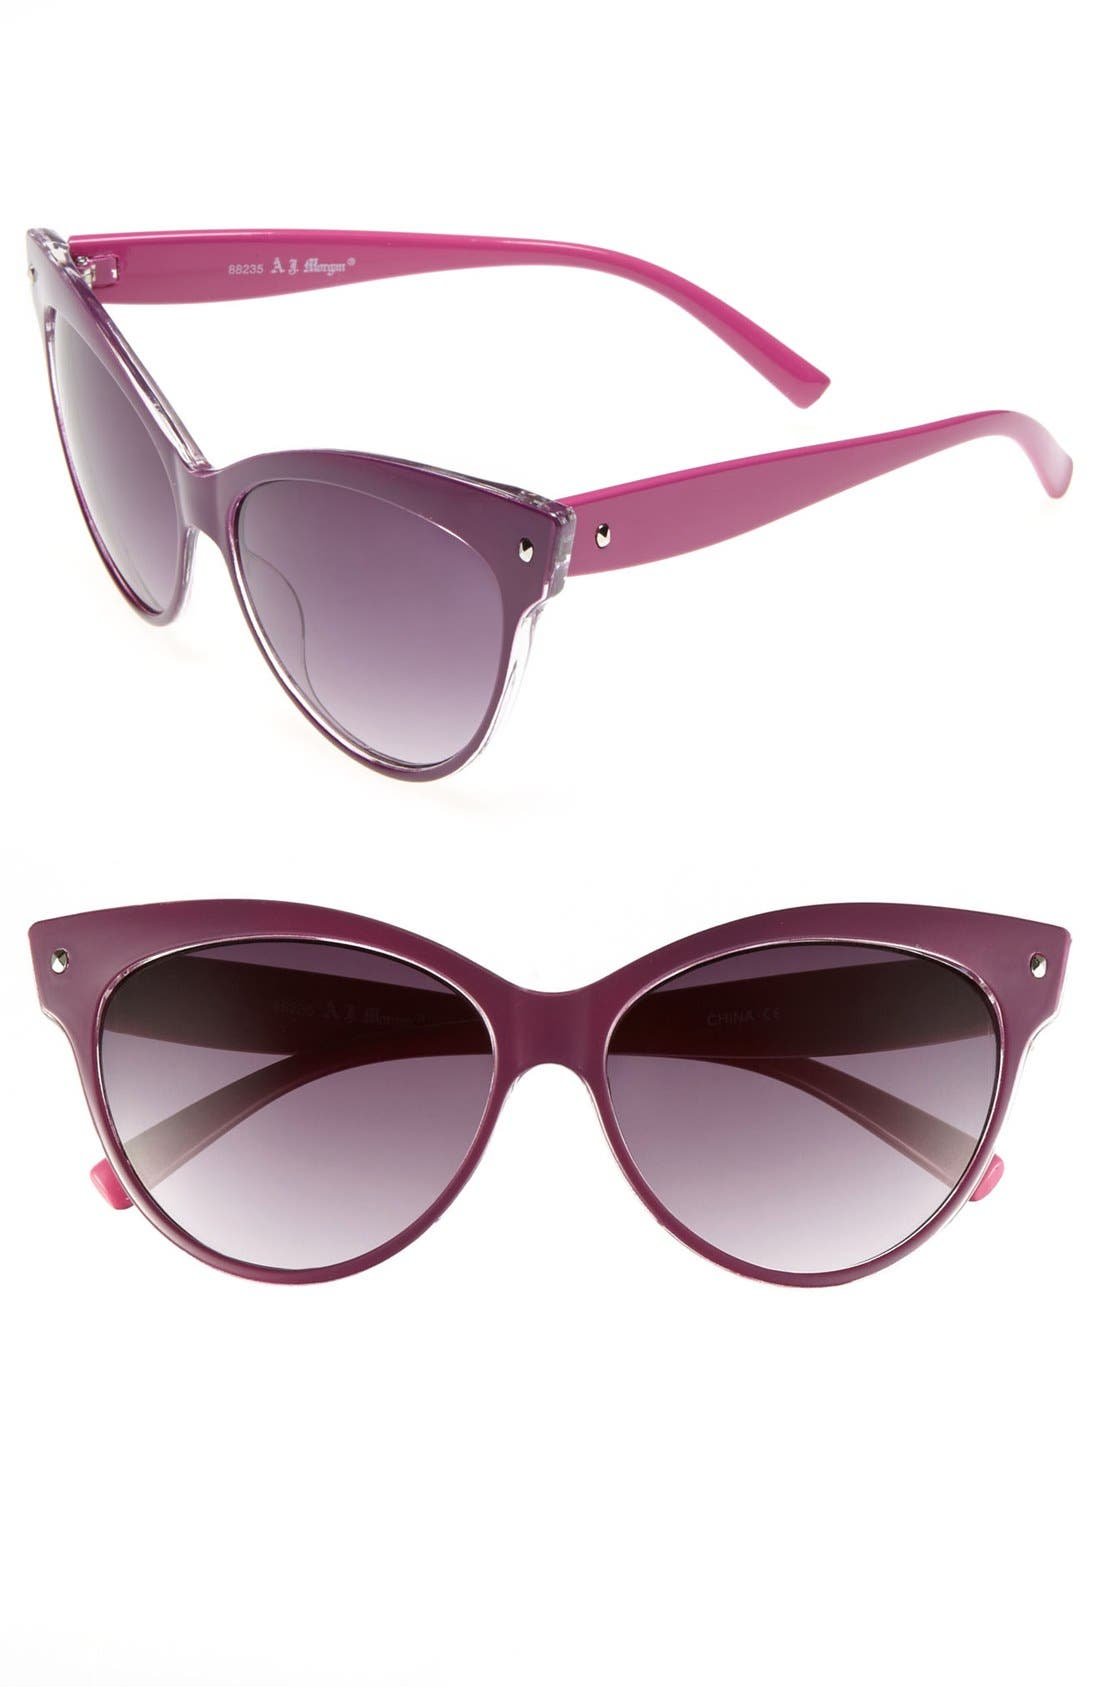 Main Image - A.J. Morgan 58mm 'Contessa' Sunglasses